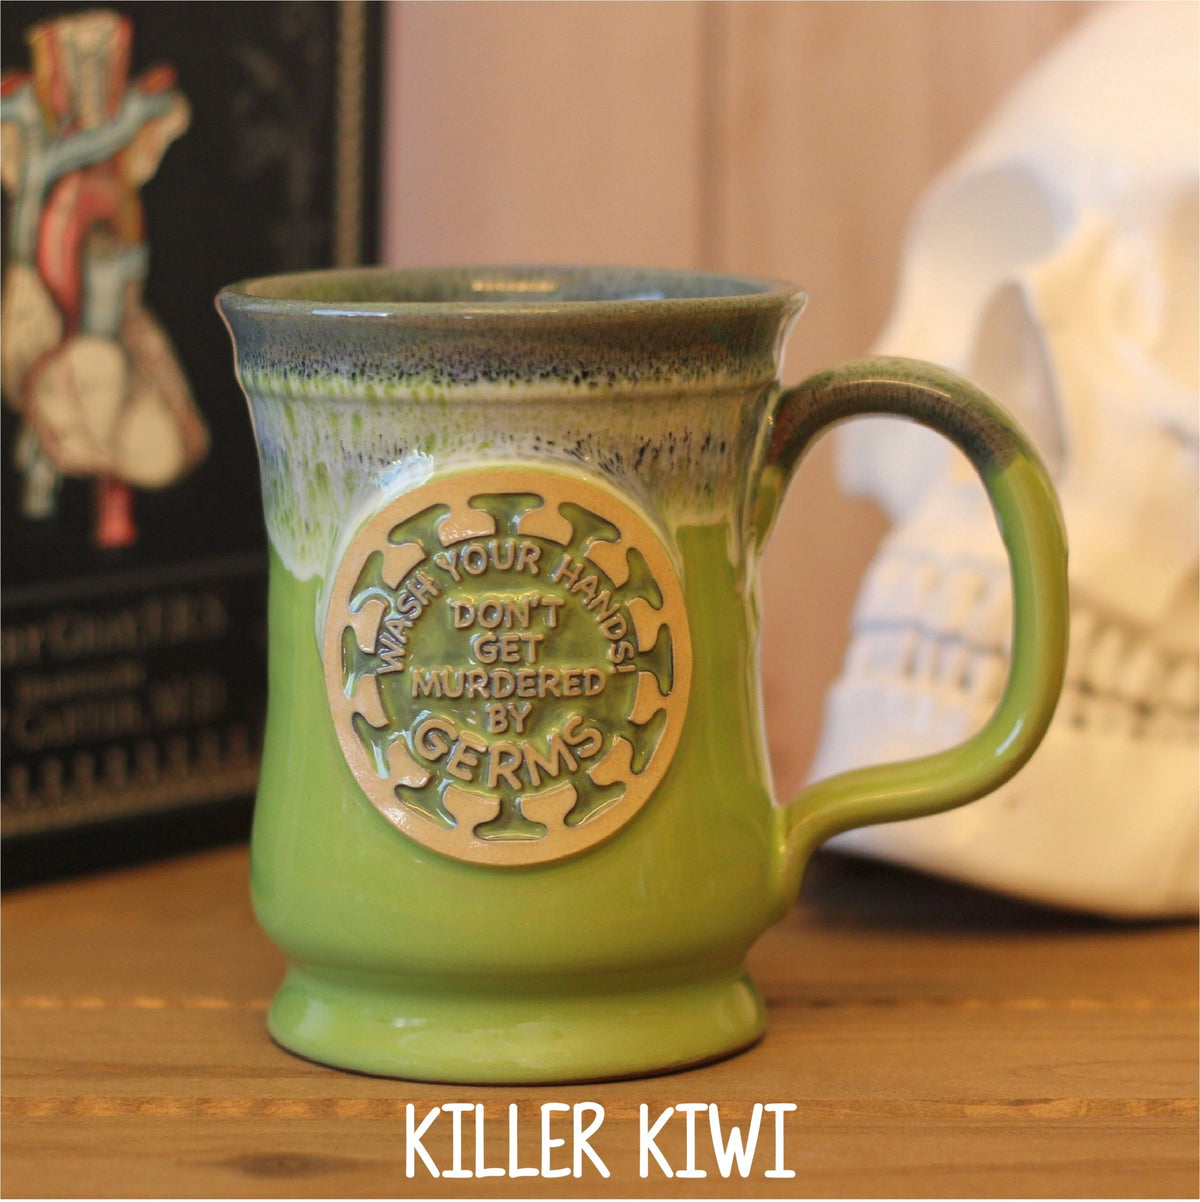 Murdered by Germs! Handcrafted Pottery Mug - Rad Girl Creations